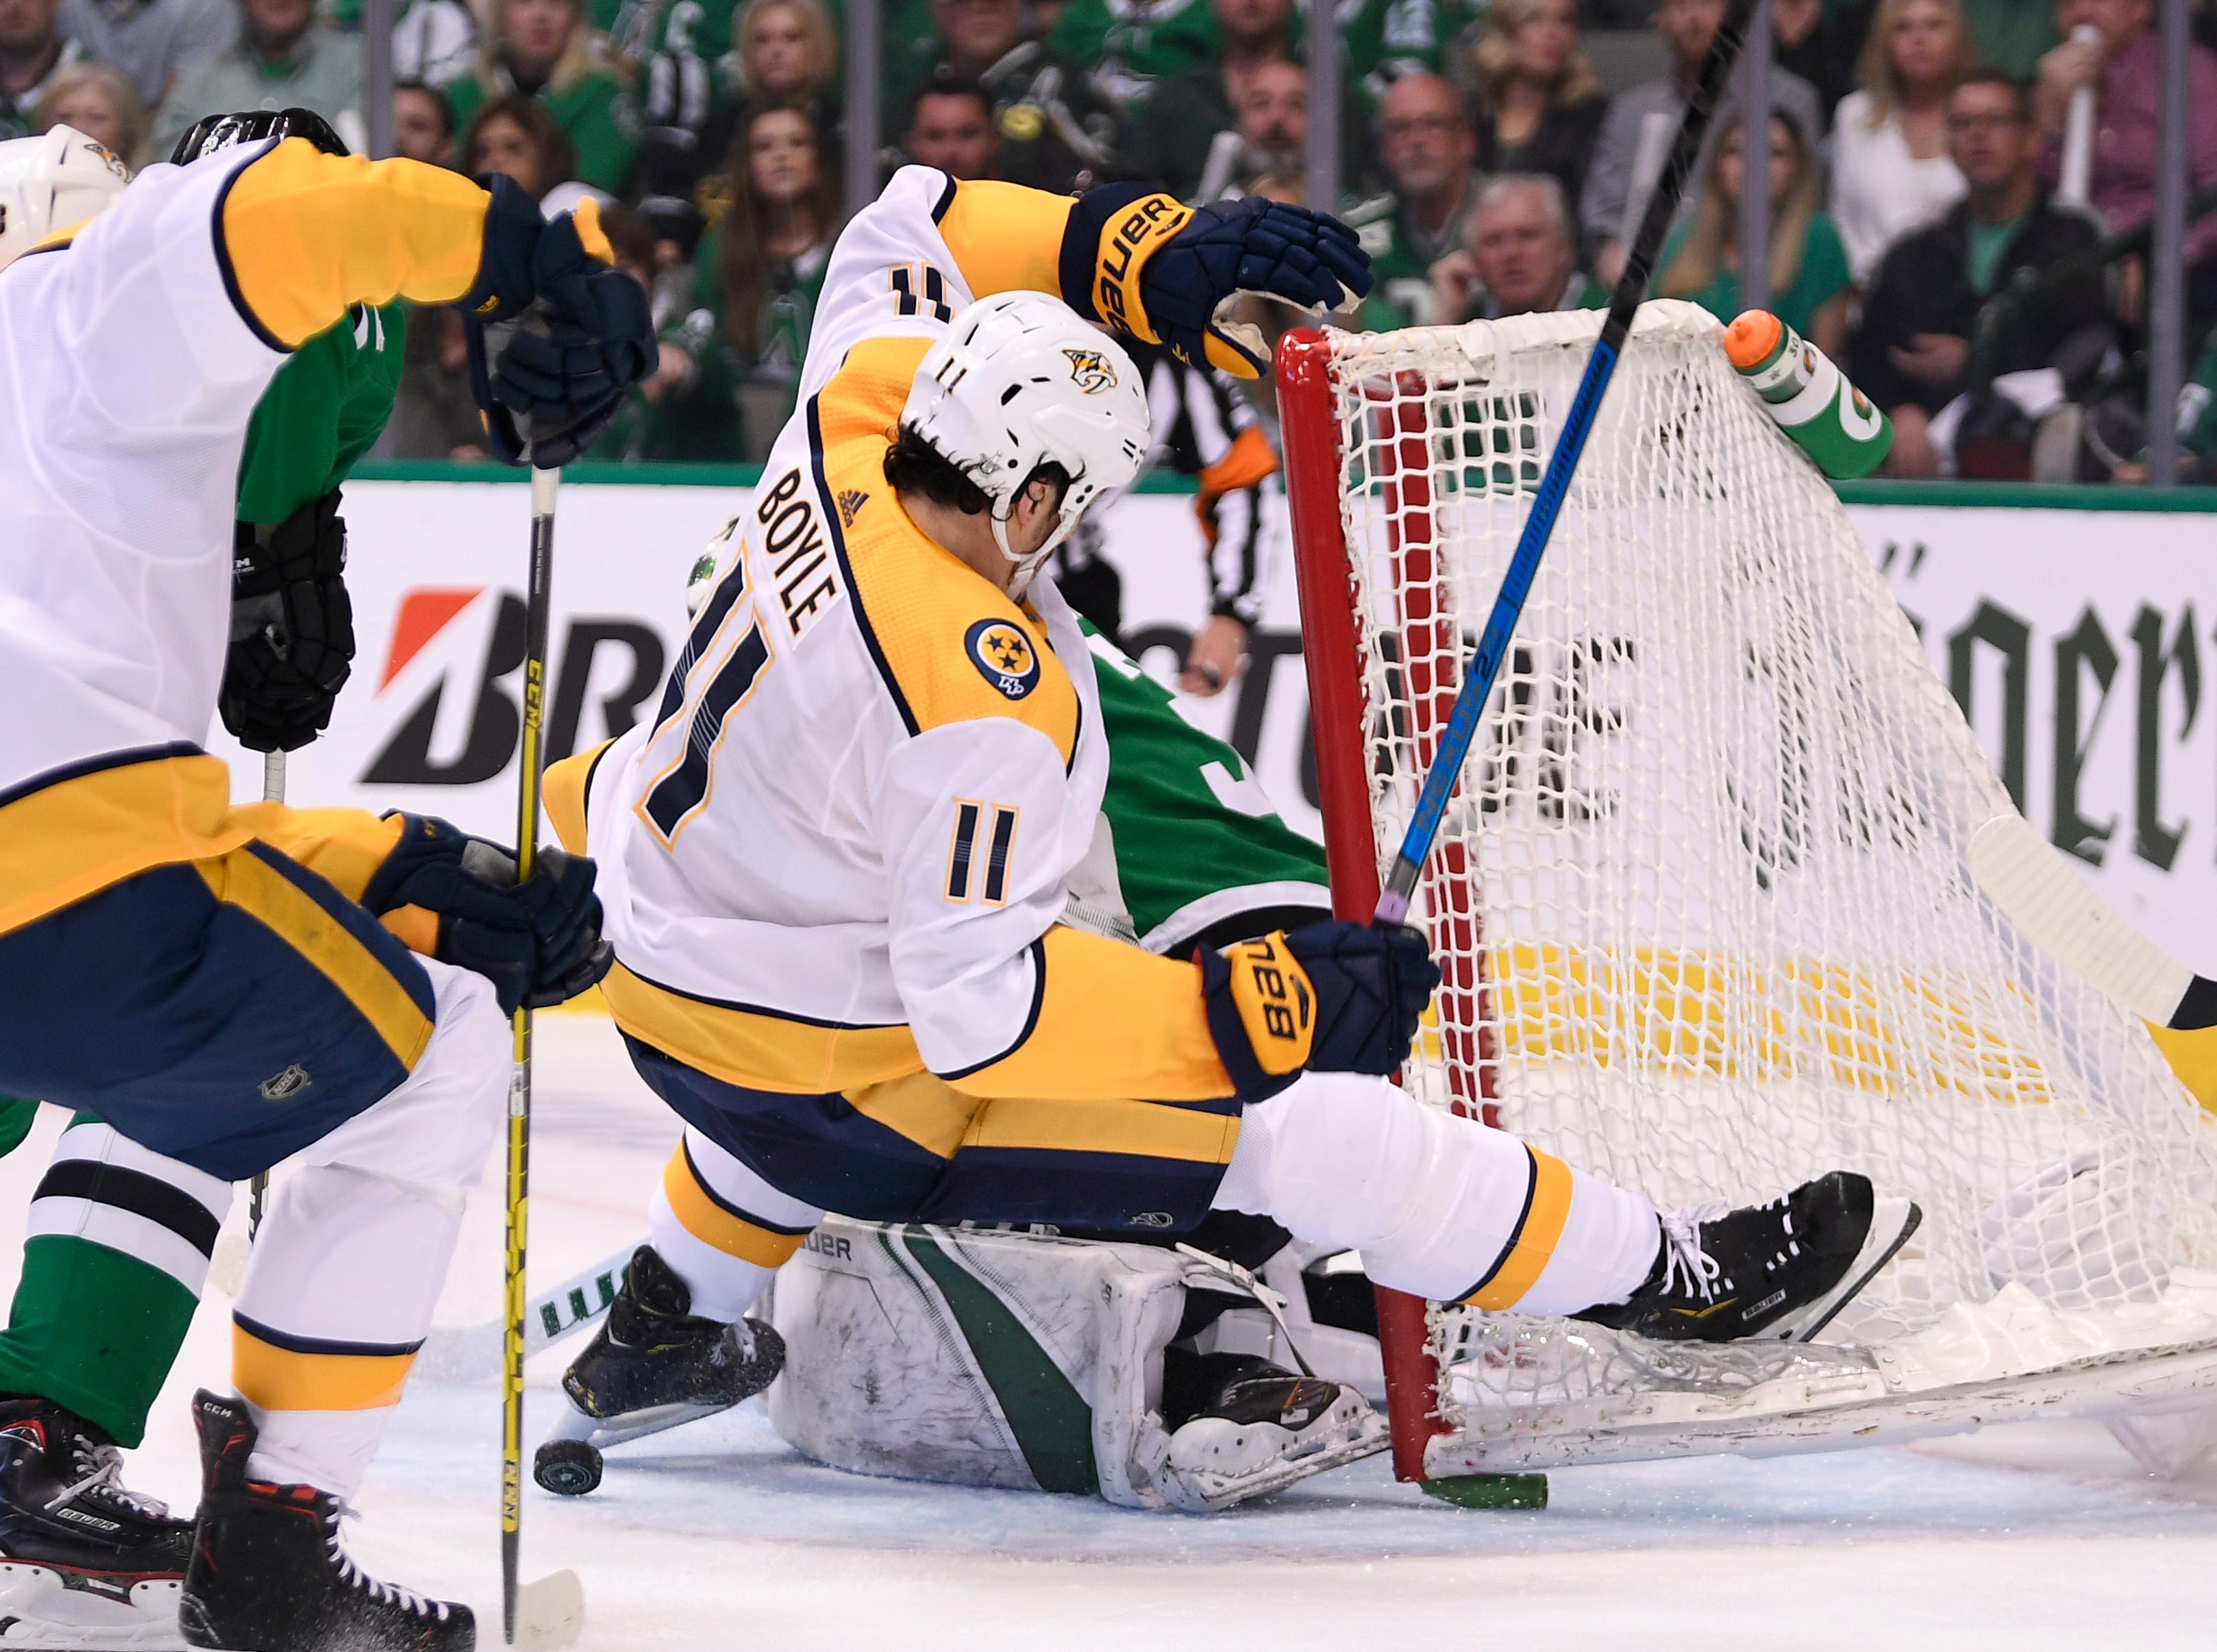 Nashville Predators center Brian Boyle (11) hits the ice after a shot at Dallas Stars goaltender Ben Bishop (30) during the first period of the divisional semifinal game at the American Airlines Center in Dallas, Texas, Monday, April 22, 2019.